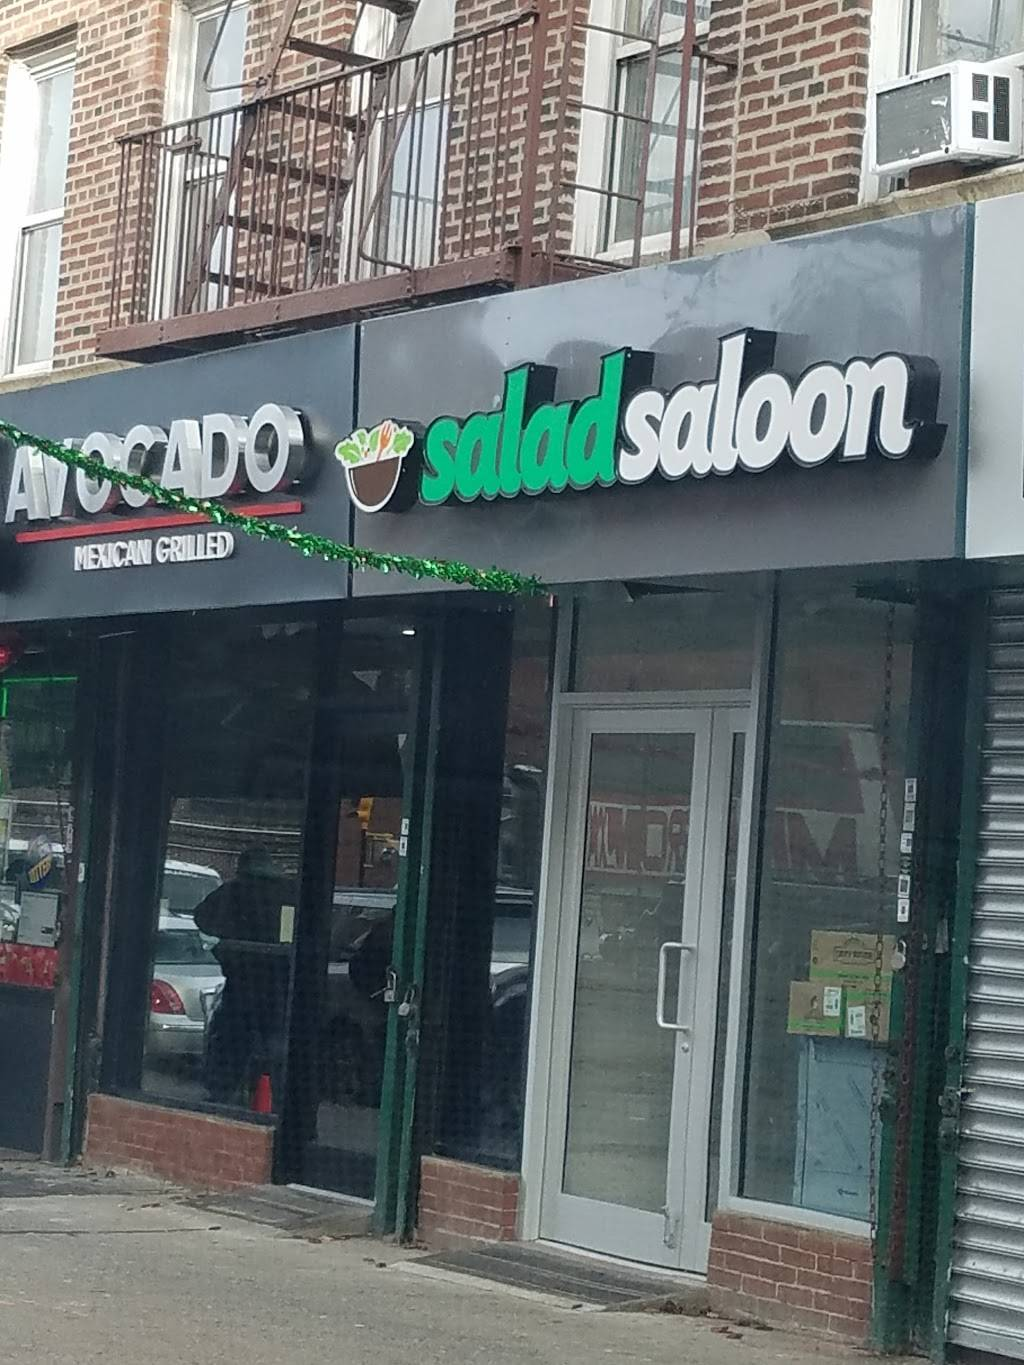 Avocado Salad Saloon Mexican Grilled | restaurant | 147 E Gun Hill Rd, Bronx, NY 10467, USA | 3473468901 OR +1 347-346-8901